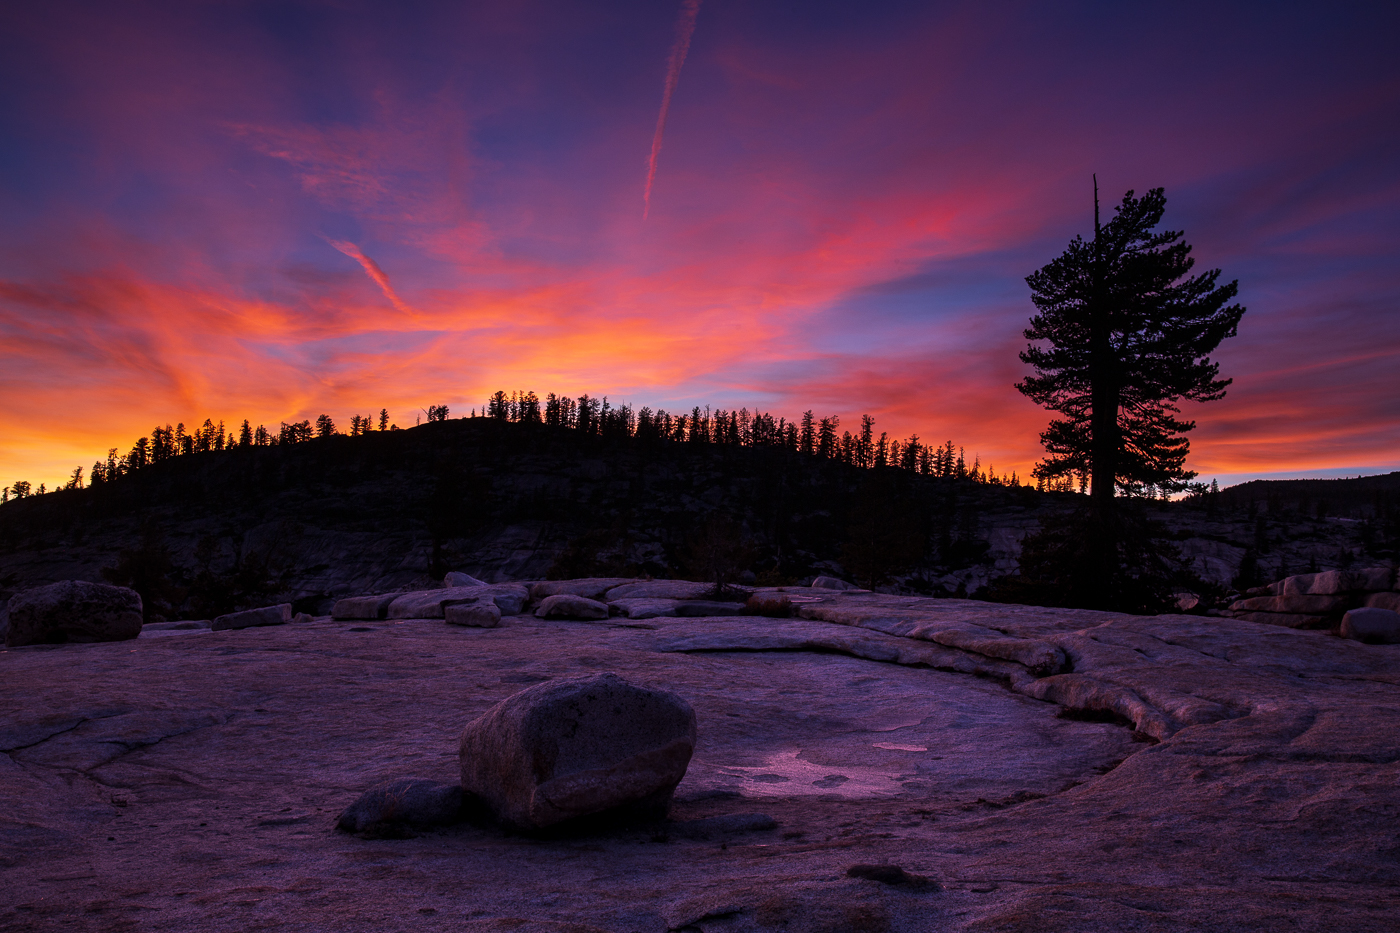 Sunset at Olmsted Point, Yosemite National Park